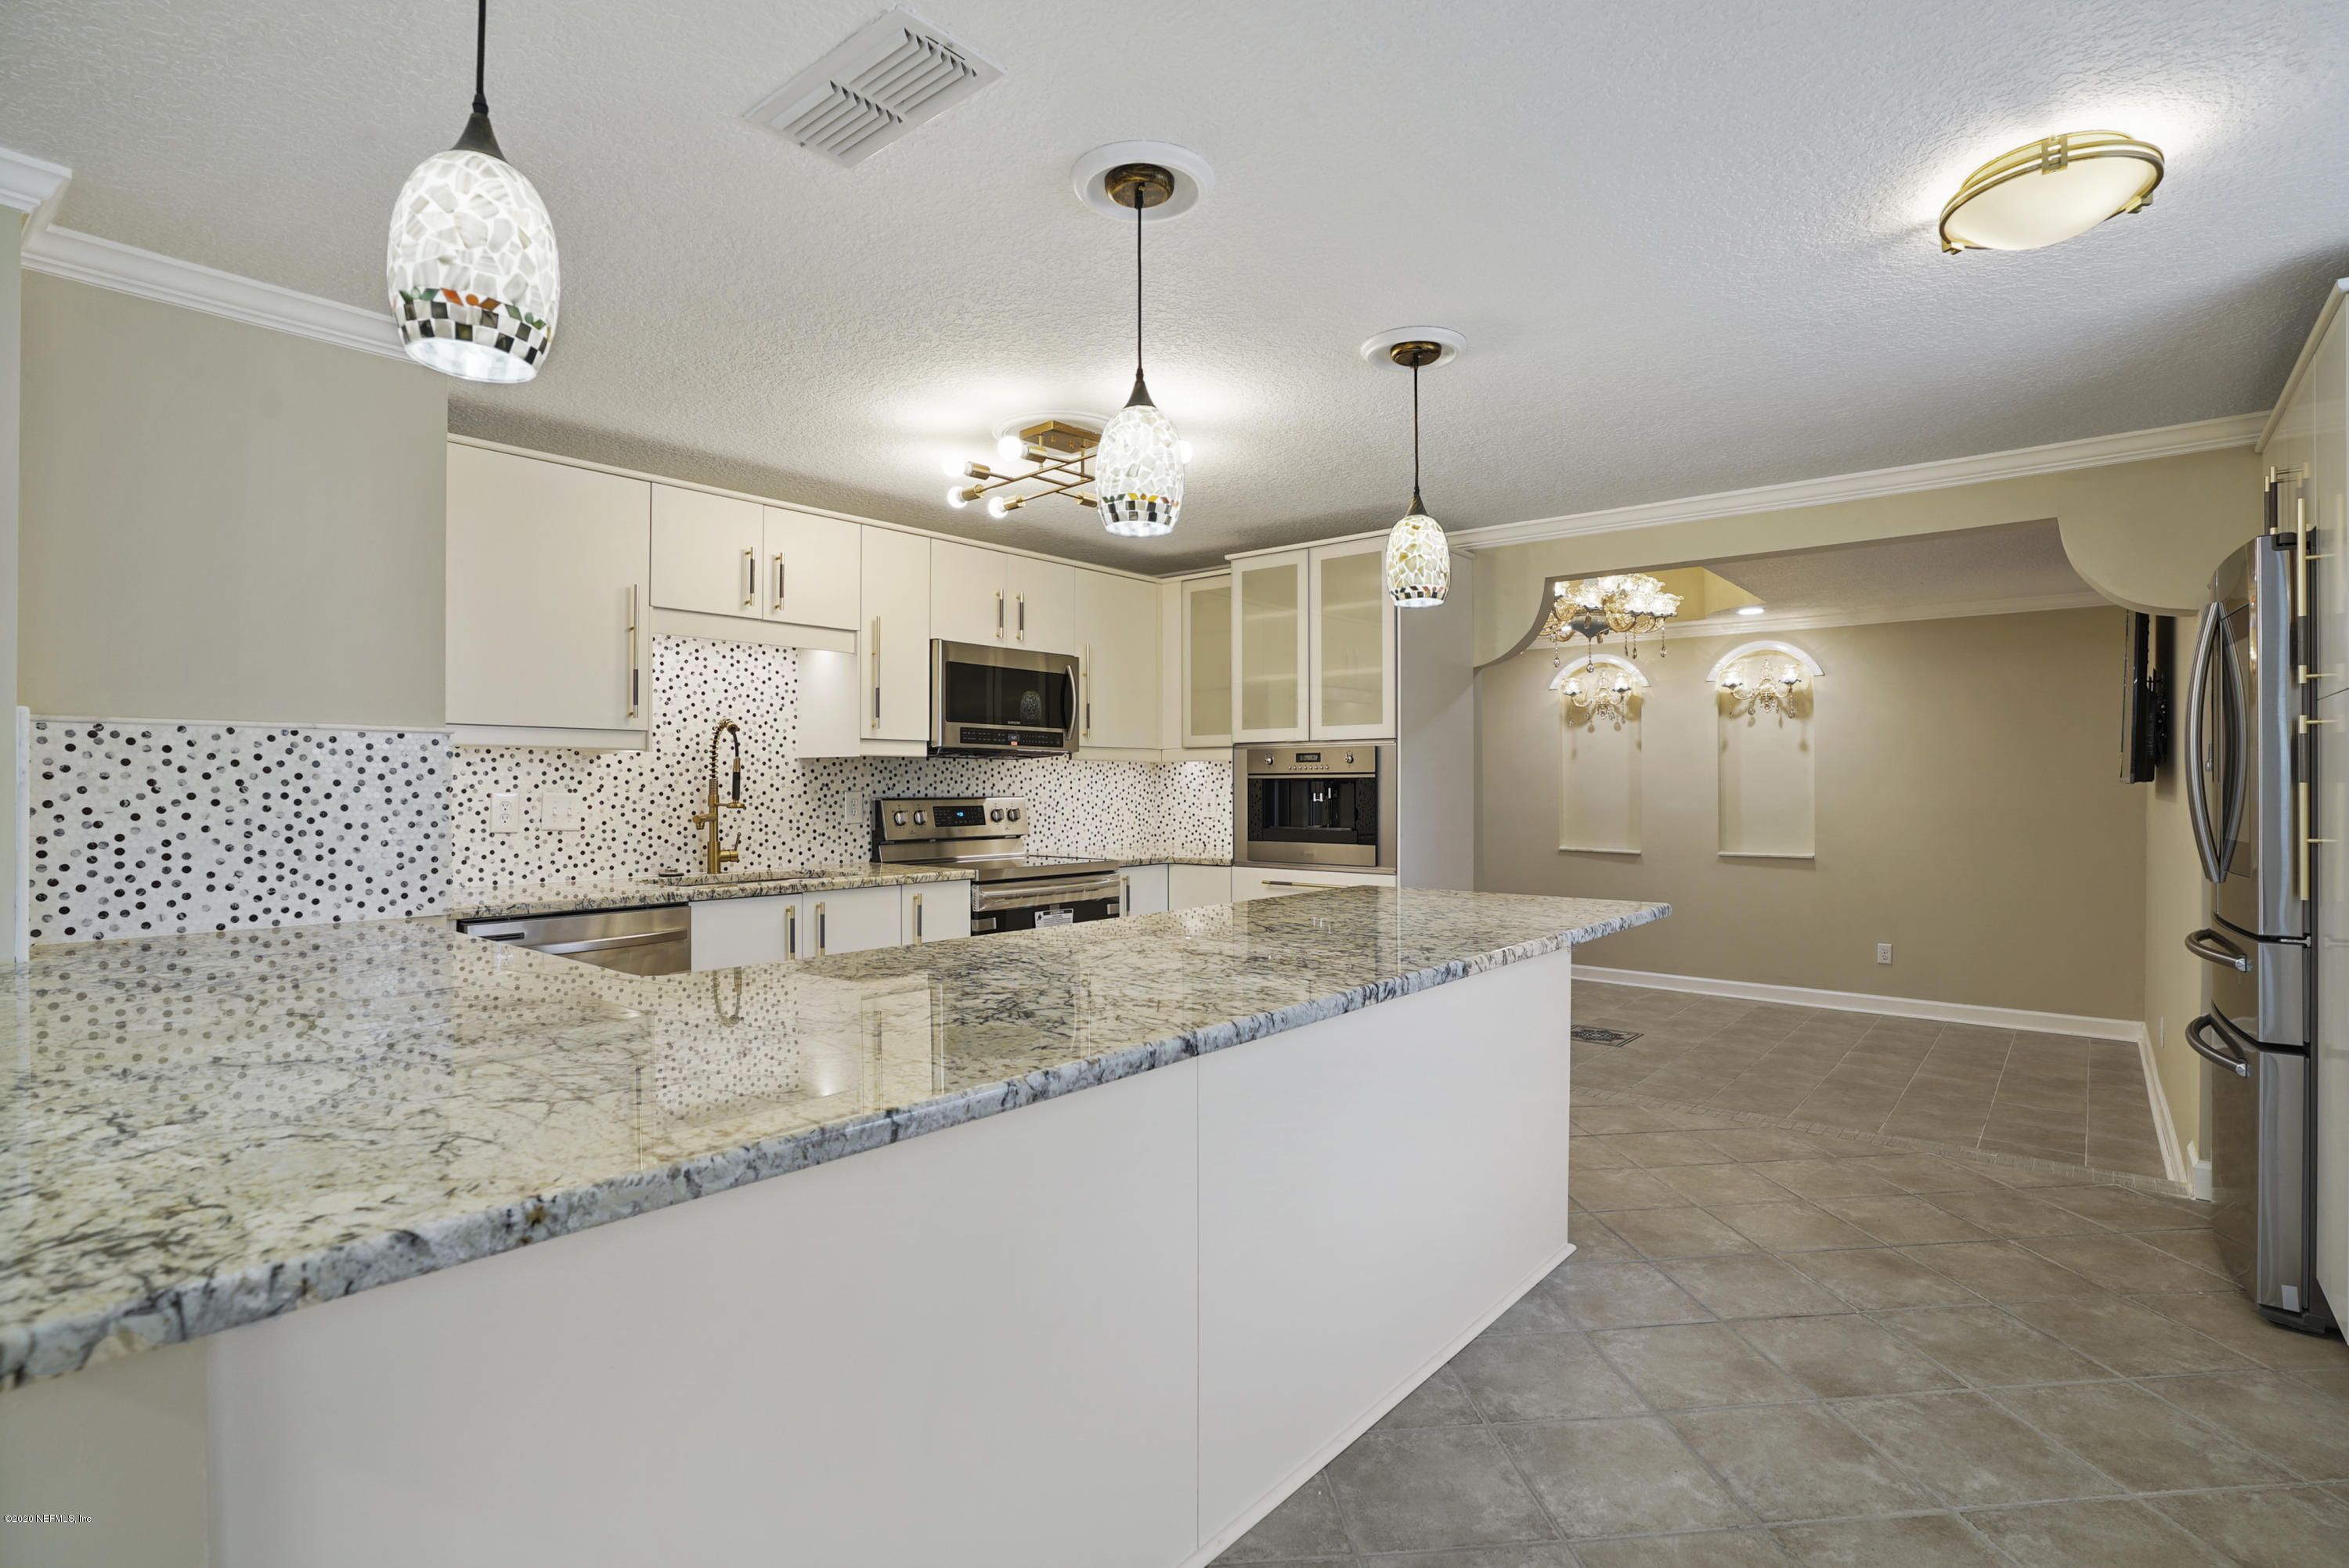 79 DOLPHIN, PONTE VEDRA BEACH, FLORIDA 32082, 3 Bedrooms Bedrooms, ,3 BathroomsBathrooms,Residential,For sale,DOLPHIN,1058162